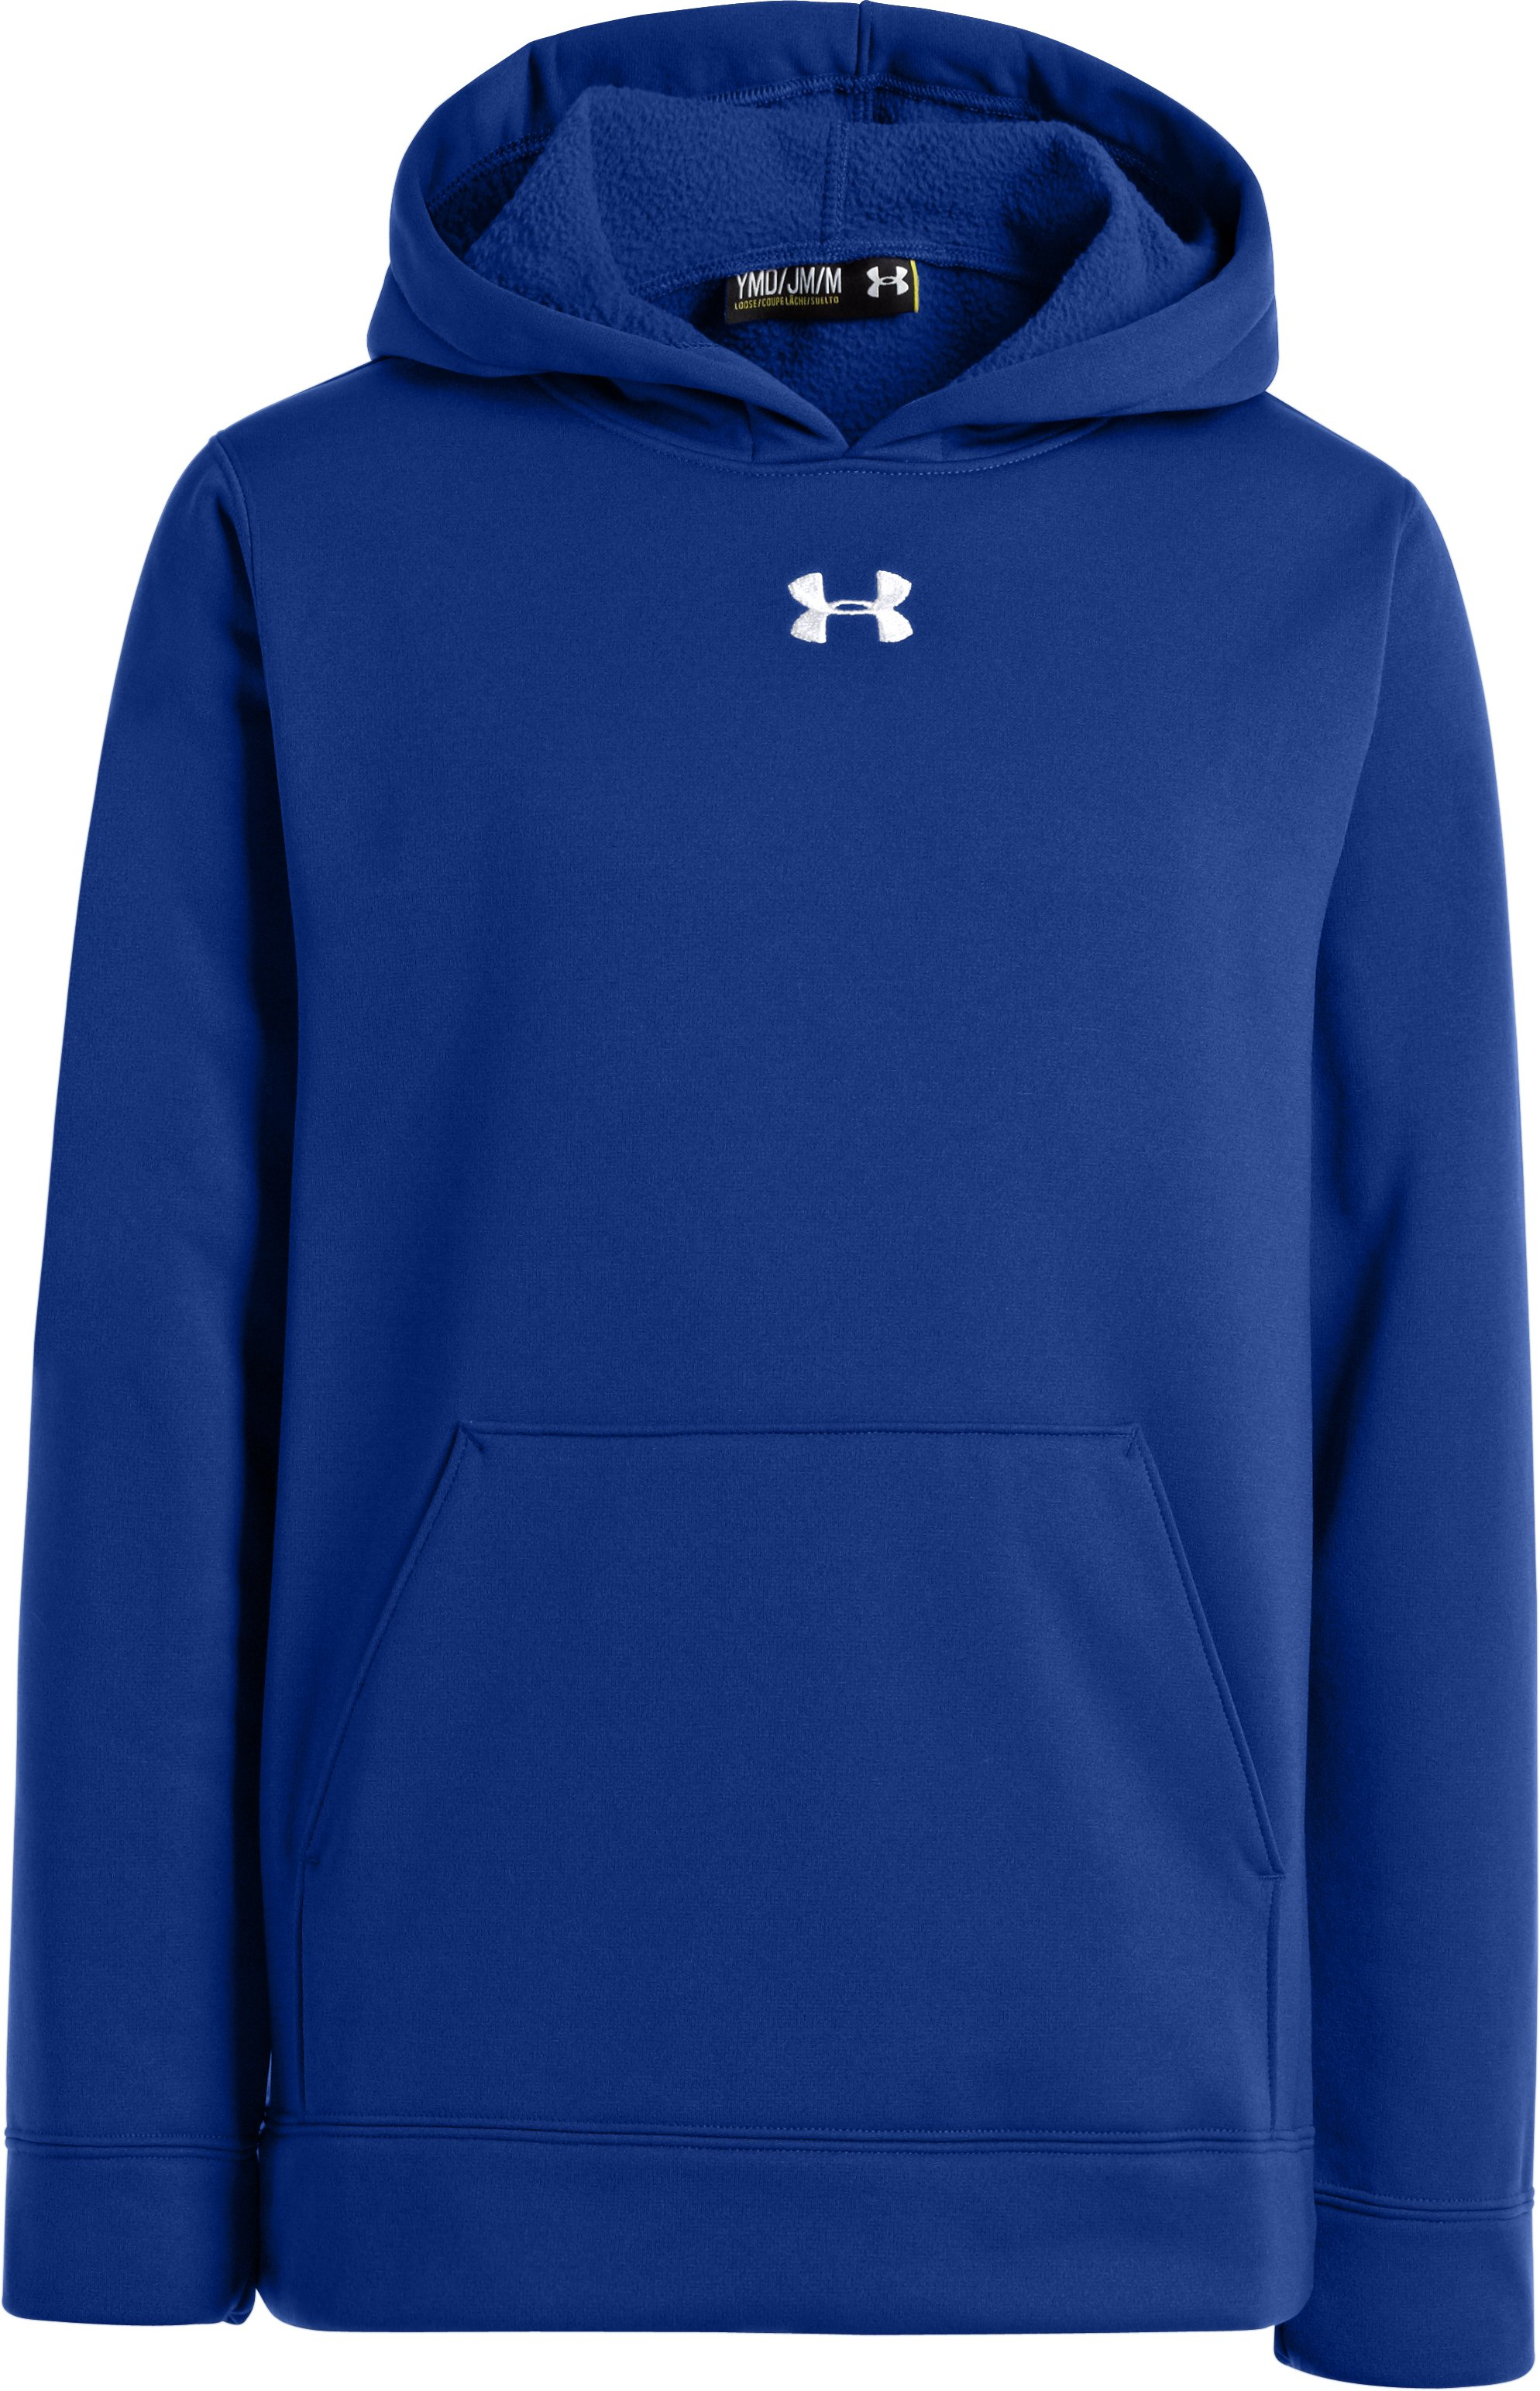 Boys' Armour® Fleece Storm Team Hoodie, Royal,